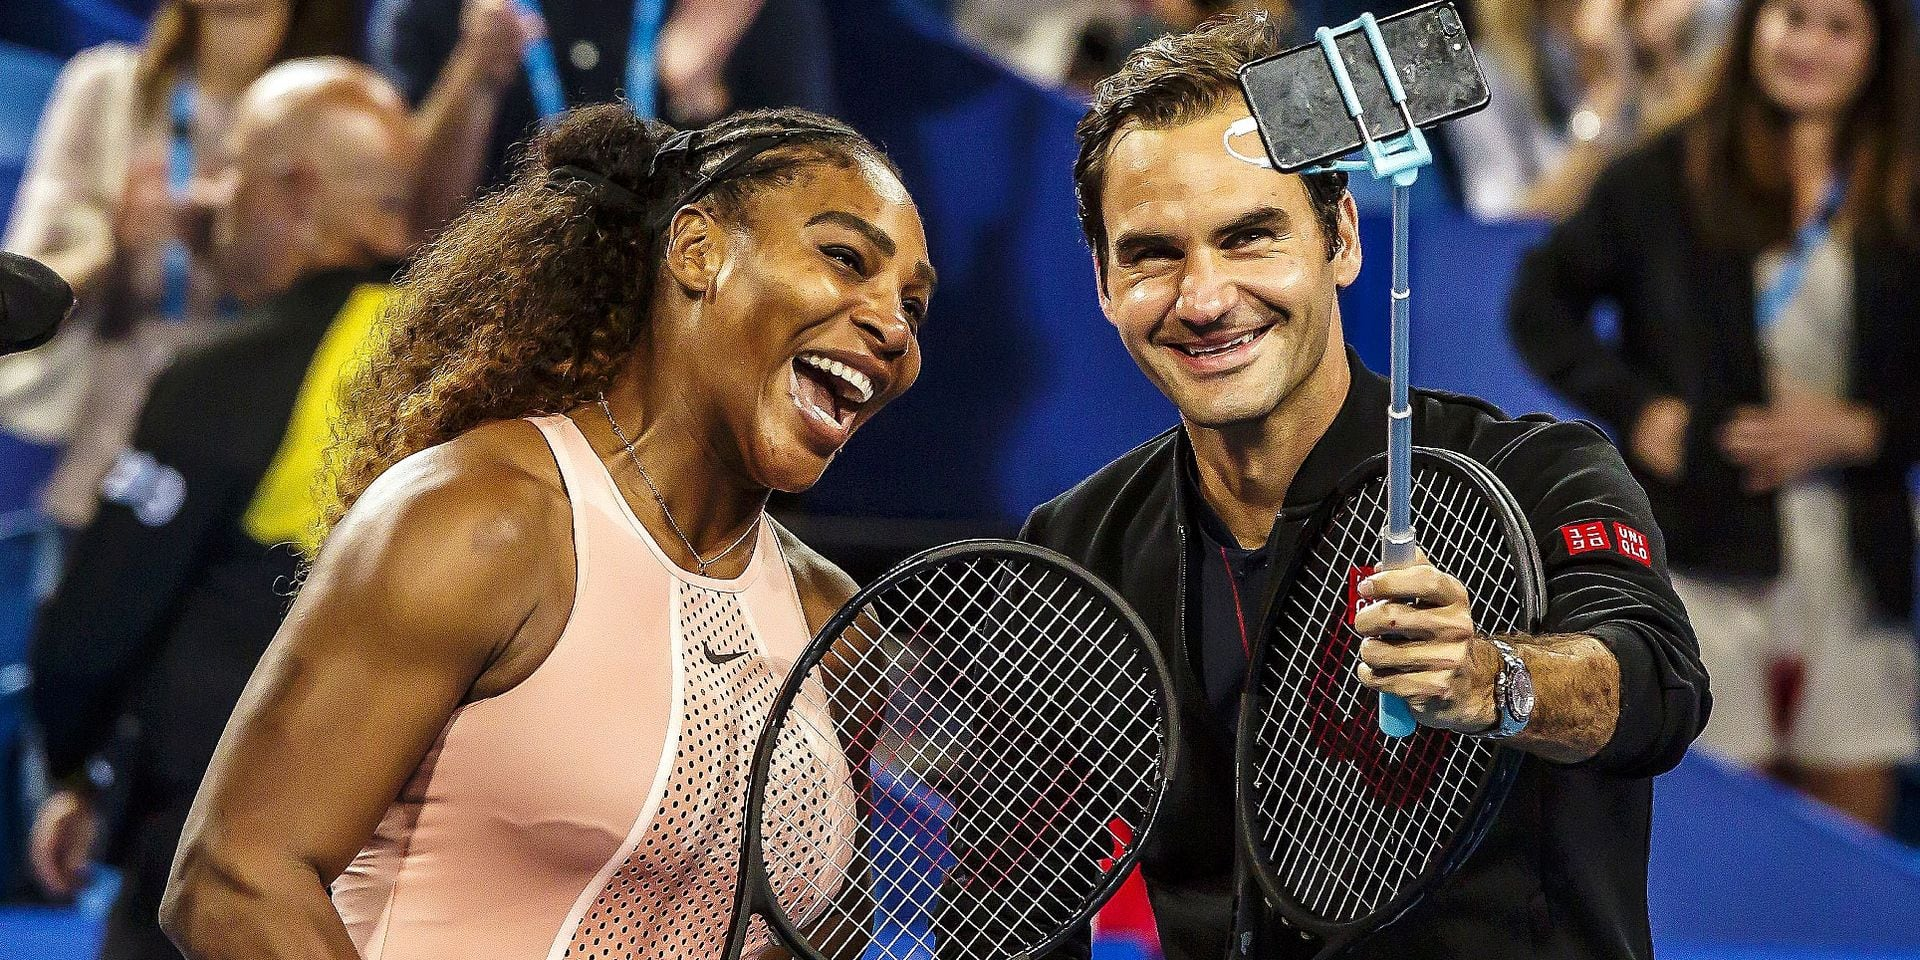 Serena Williams of the US (L) and Roger Federer of Switzerland (R) take a selfie after winning their mixed doubles match on day four of the Hopman Cup tennis tournament in Perth January 1, 2019. (Photo by TONY ASHBY / AFP) / -- IMAGE RESTRICTED TO EDITORIAL USE - STRICTLY NO COMMERCIAL USE --